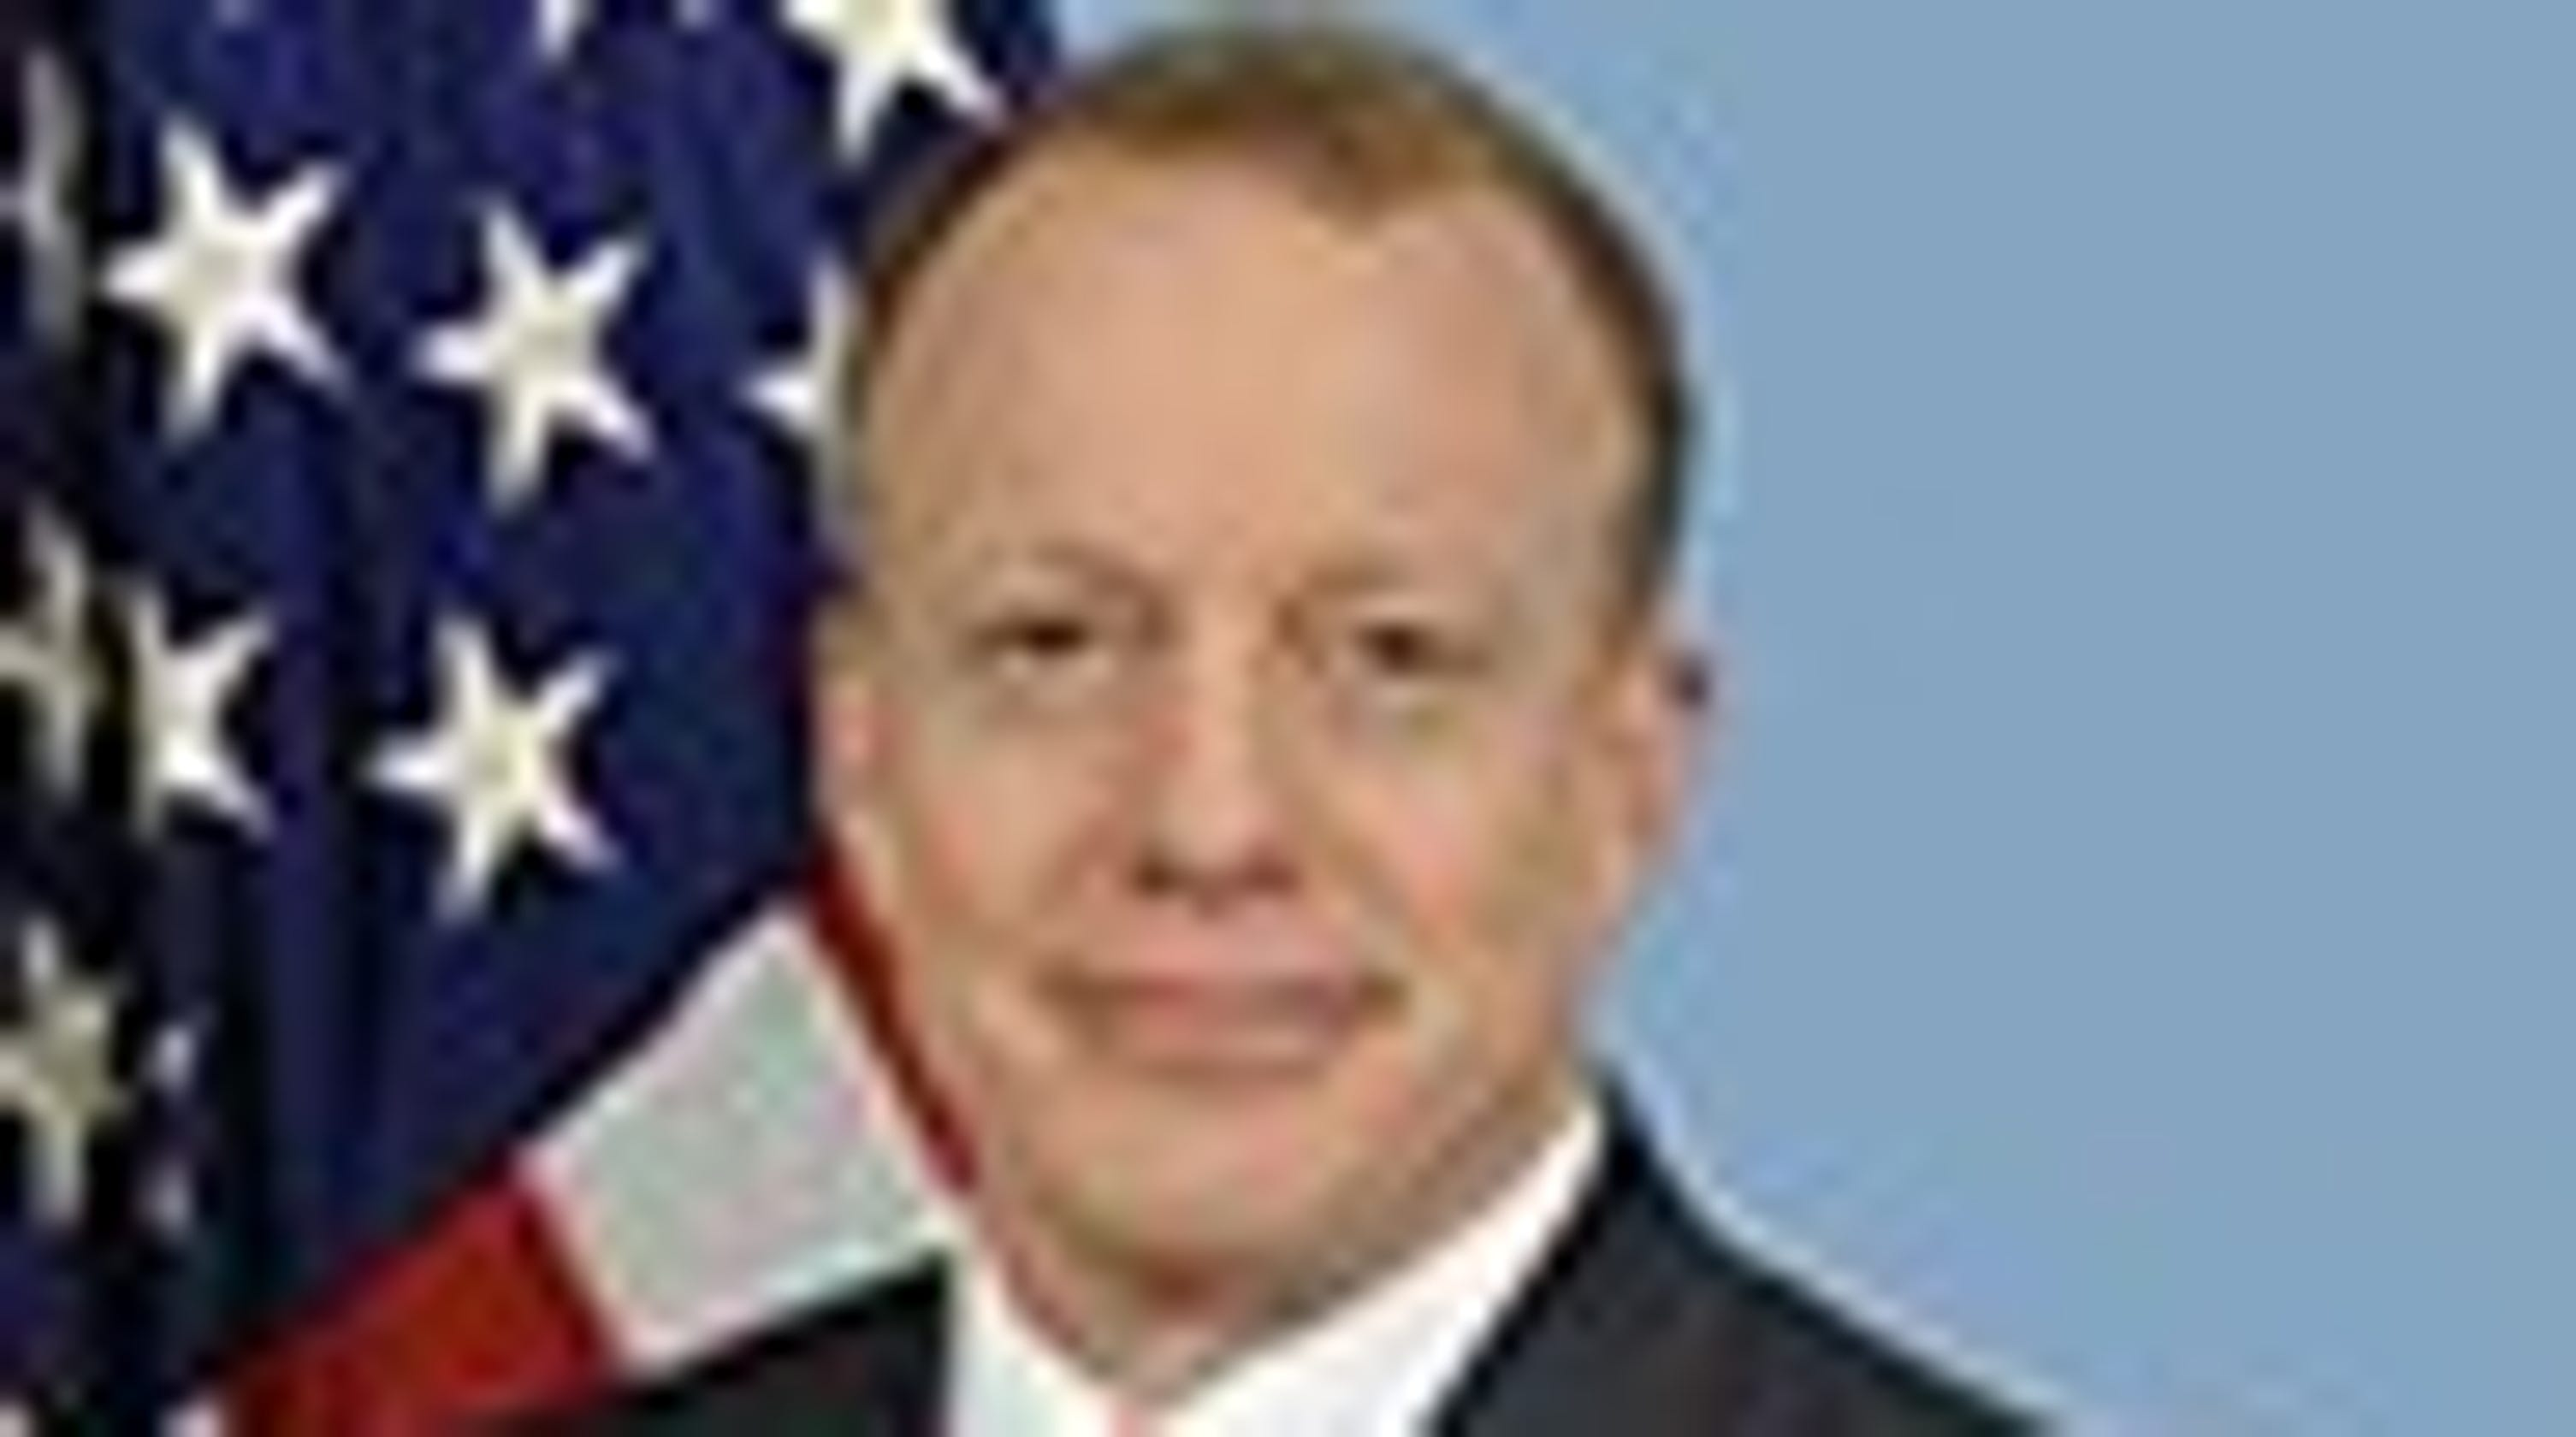 FBI's Detroit chief to lead agency's Washington Field Office